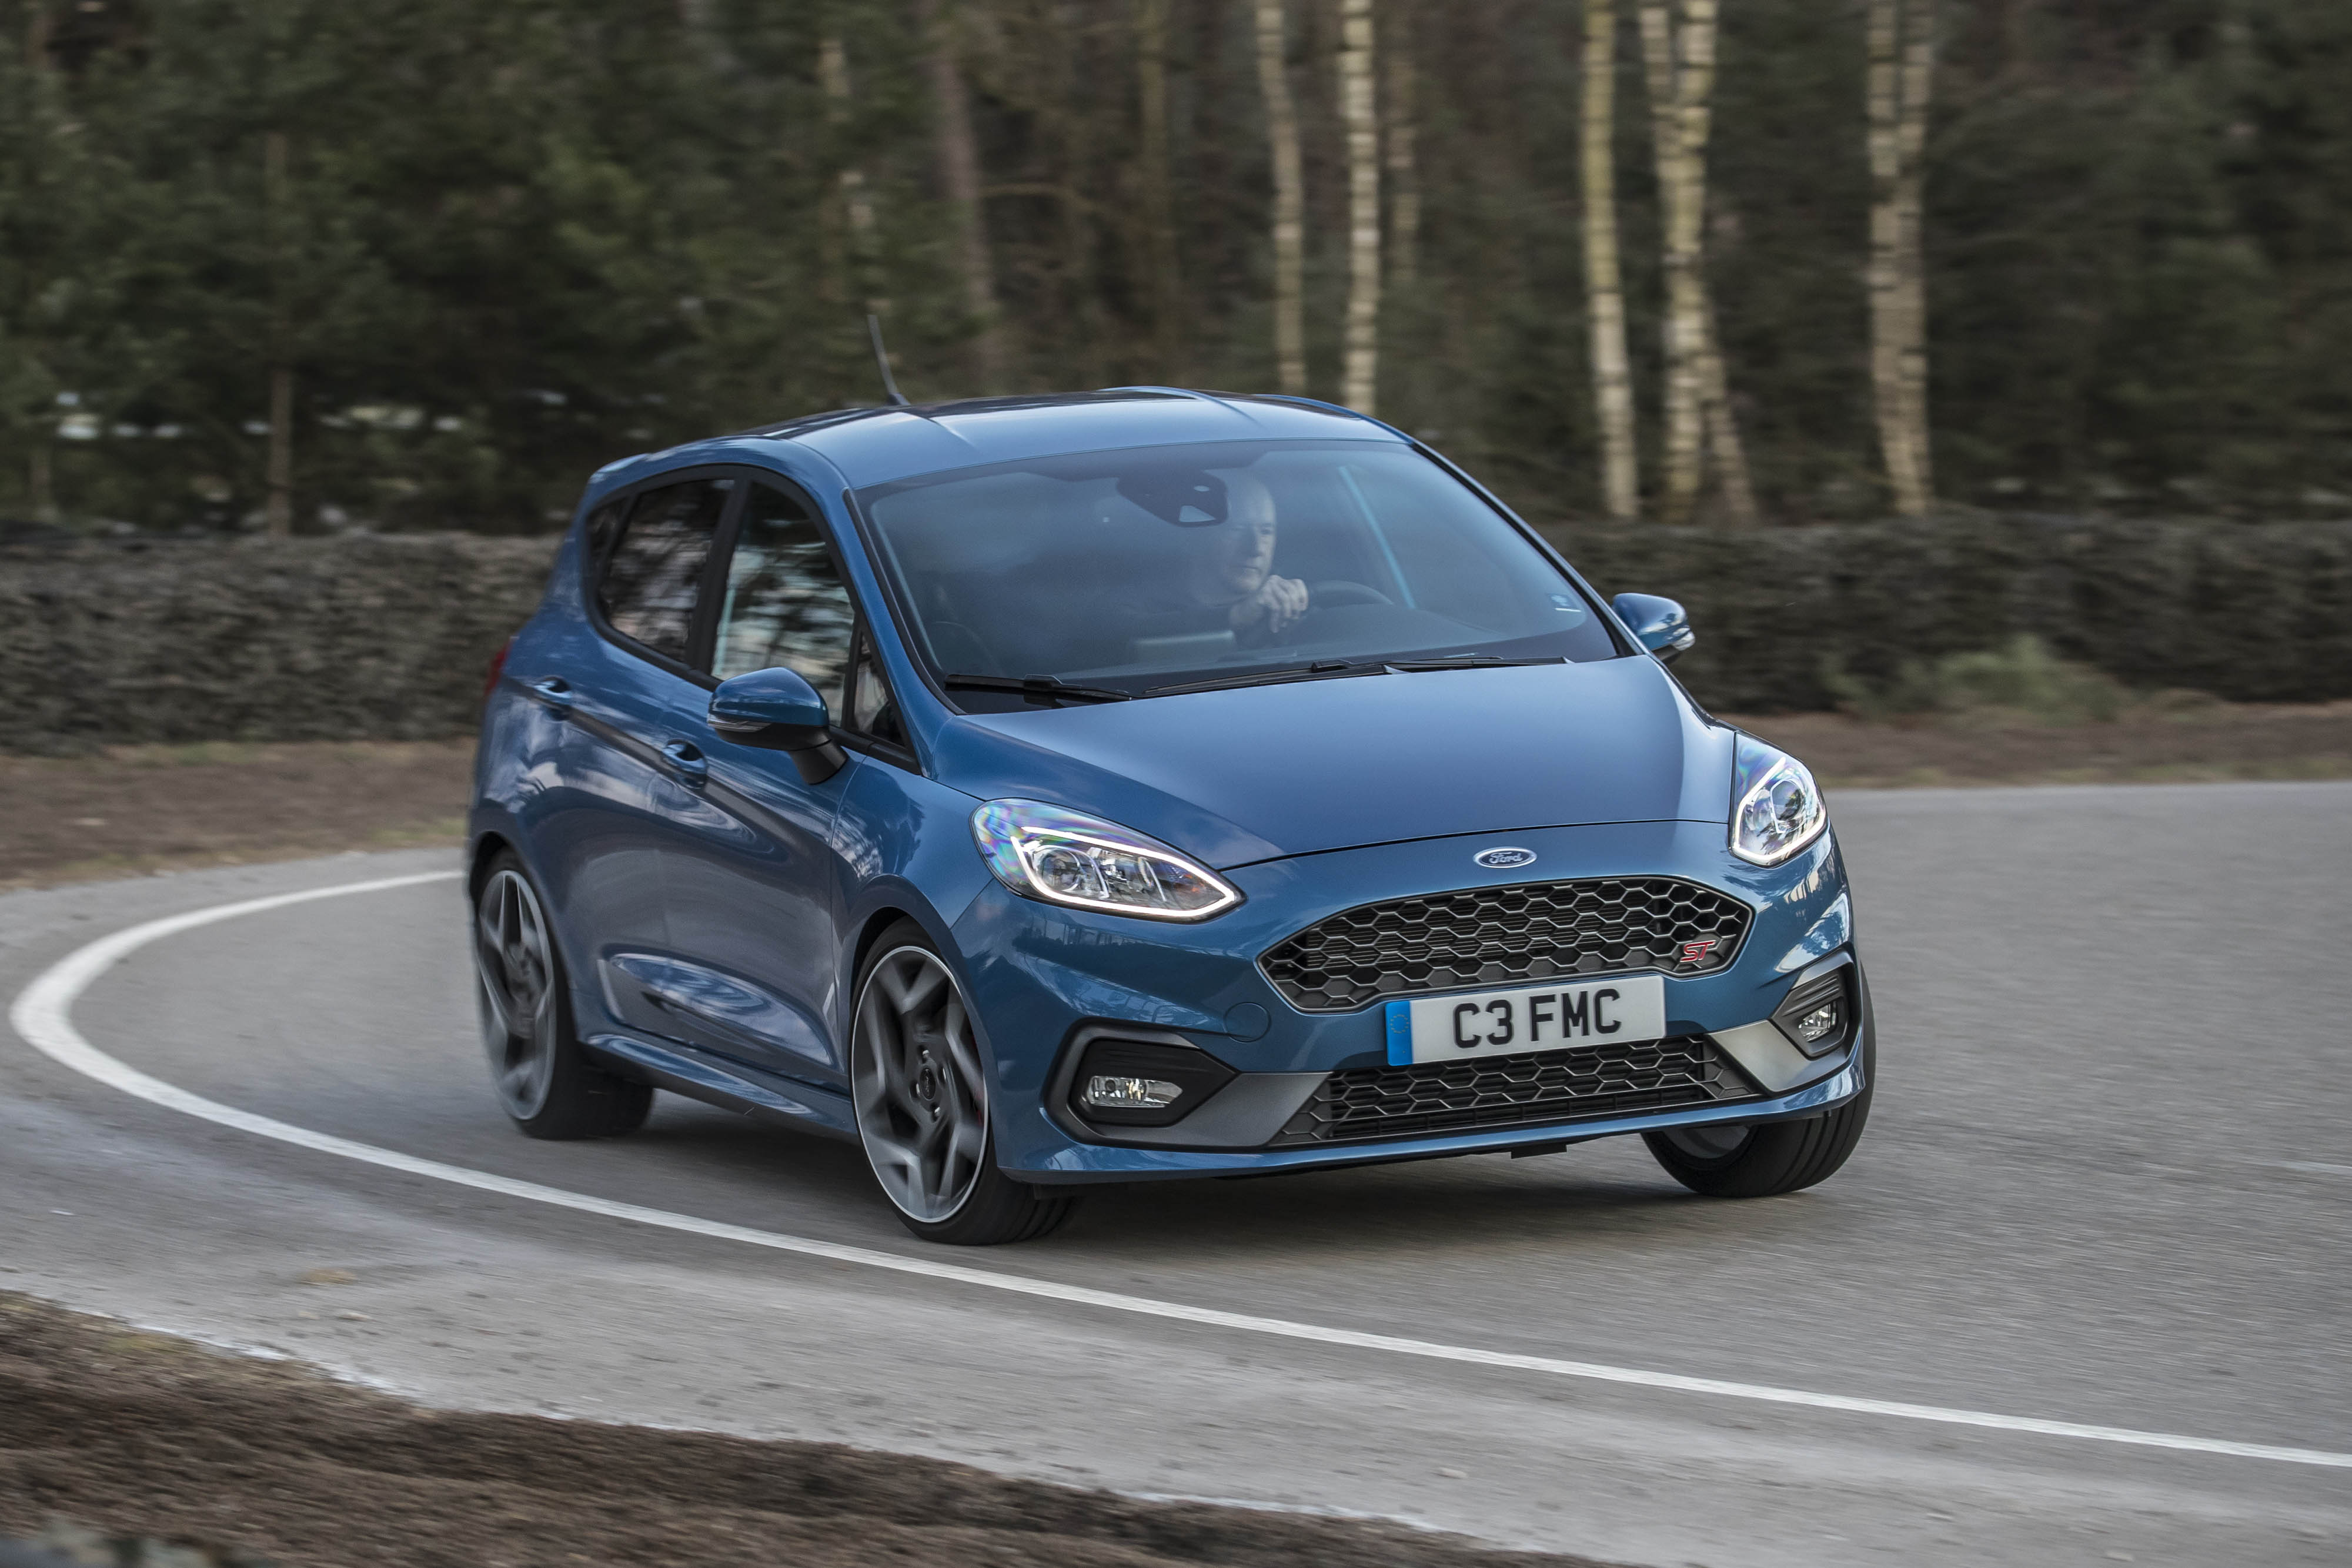 2018 ford fiesta st price announced starts at eur 22 100. Black Bedroom Furniture Sets. Home Design Ideas